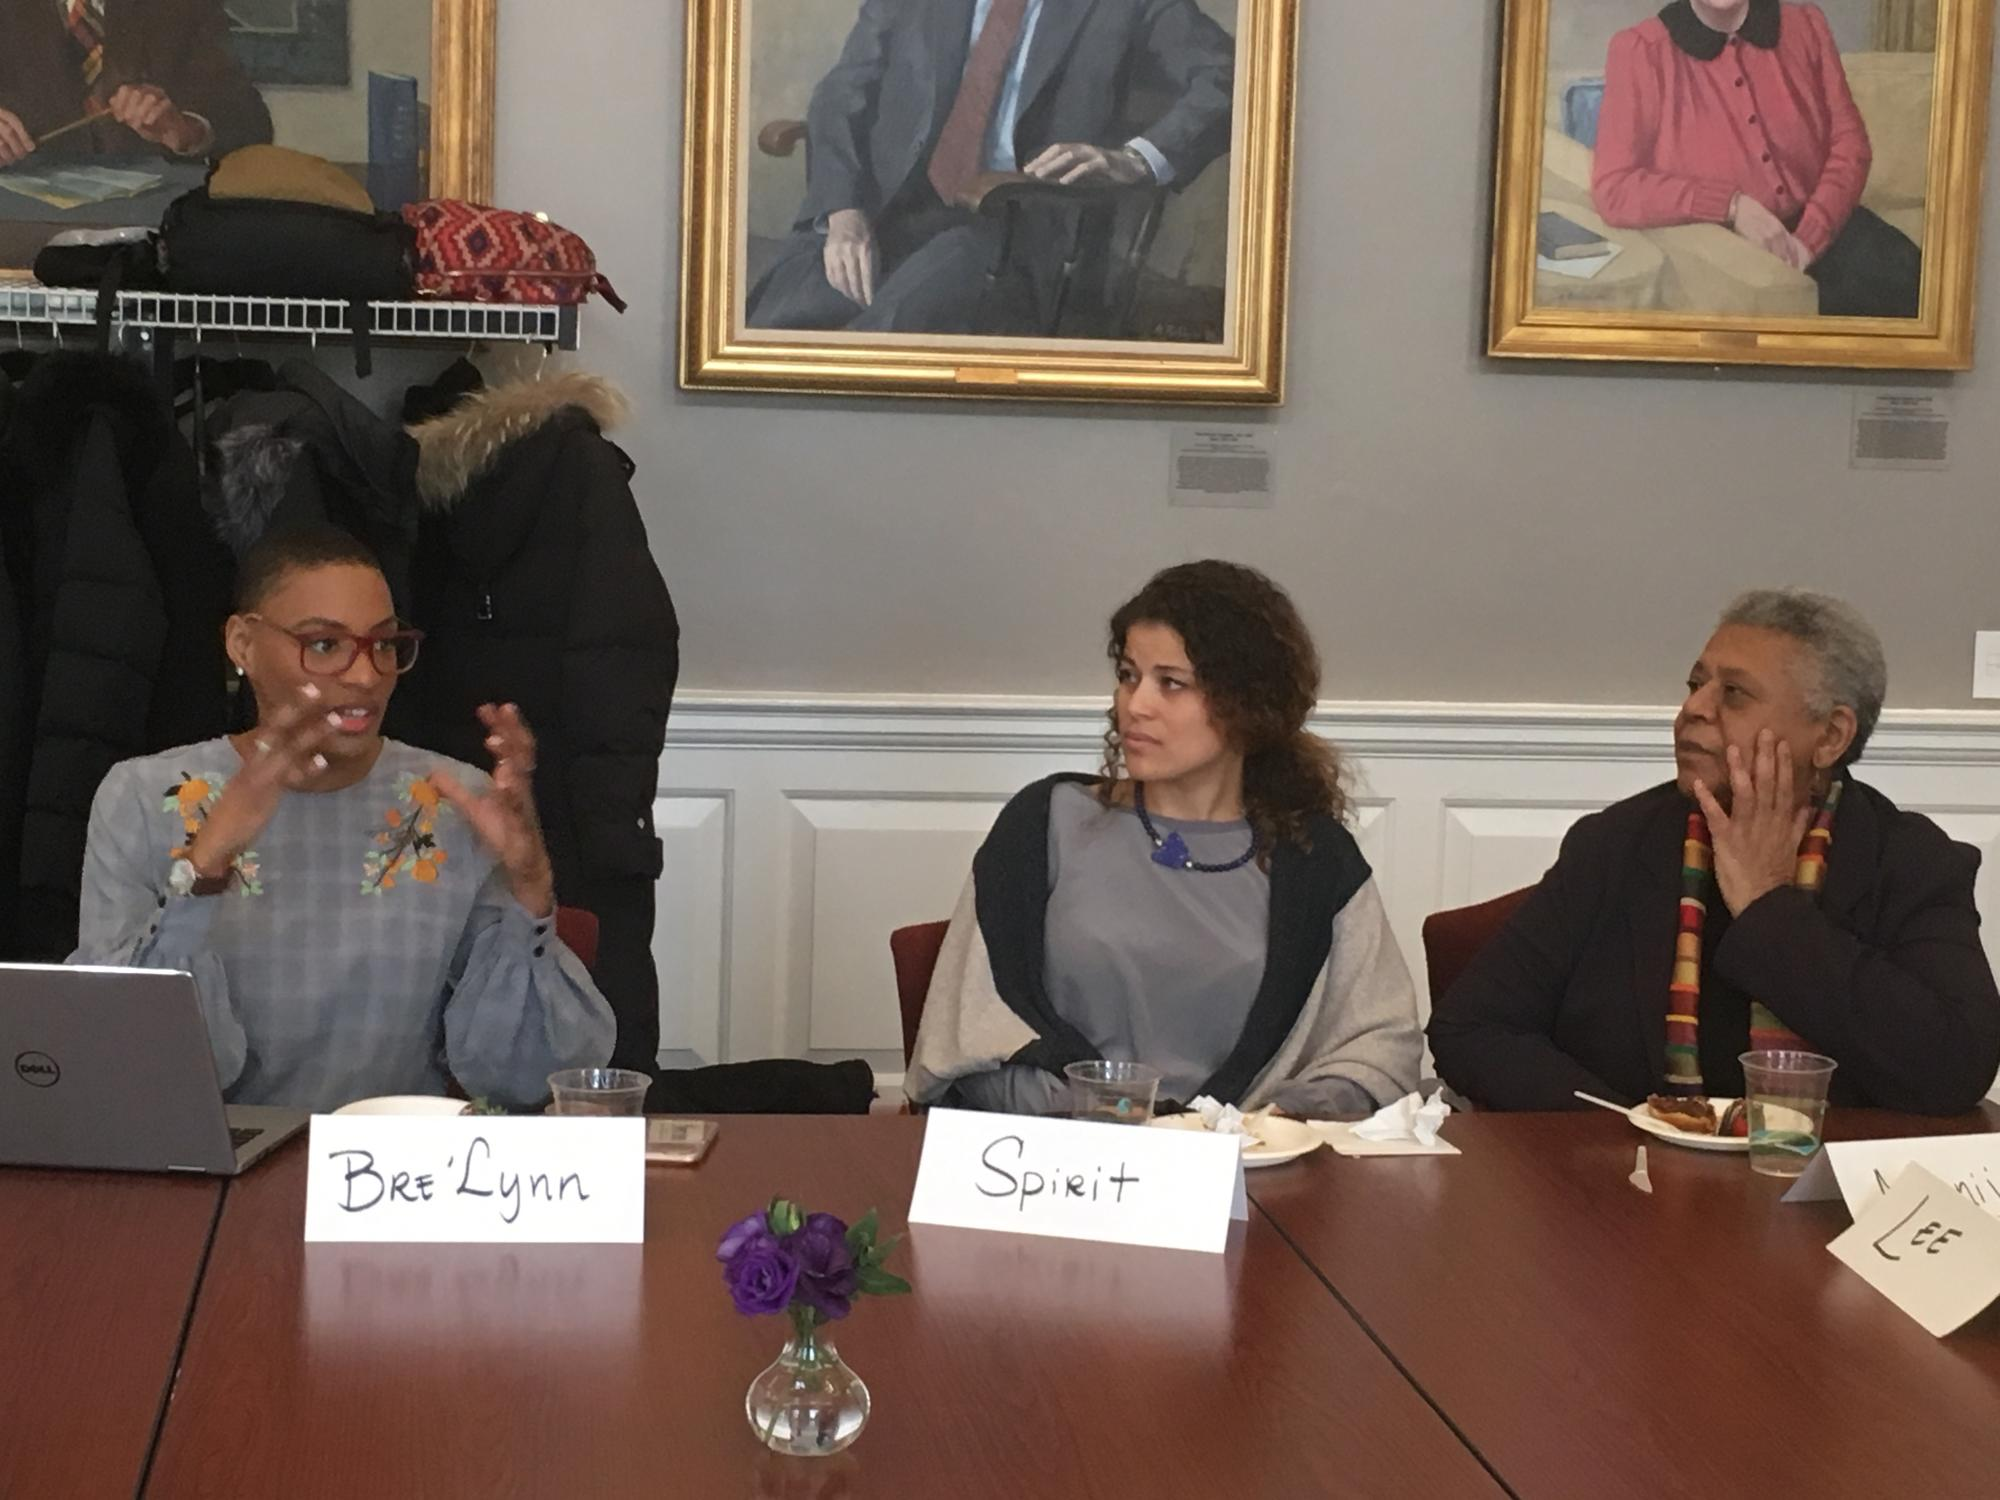 Image of three women, Bre'Lynn Lombard of the HGSE Black Student Union, Minnijean Roberts of the Little Rock Nine and her daughter Spirit Tawfiq